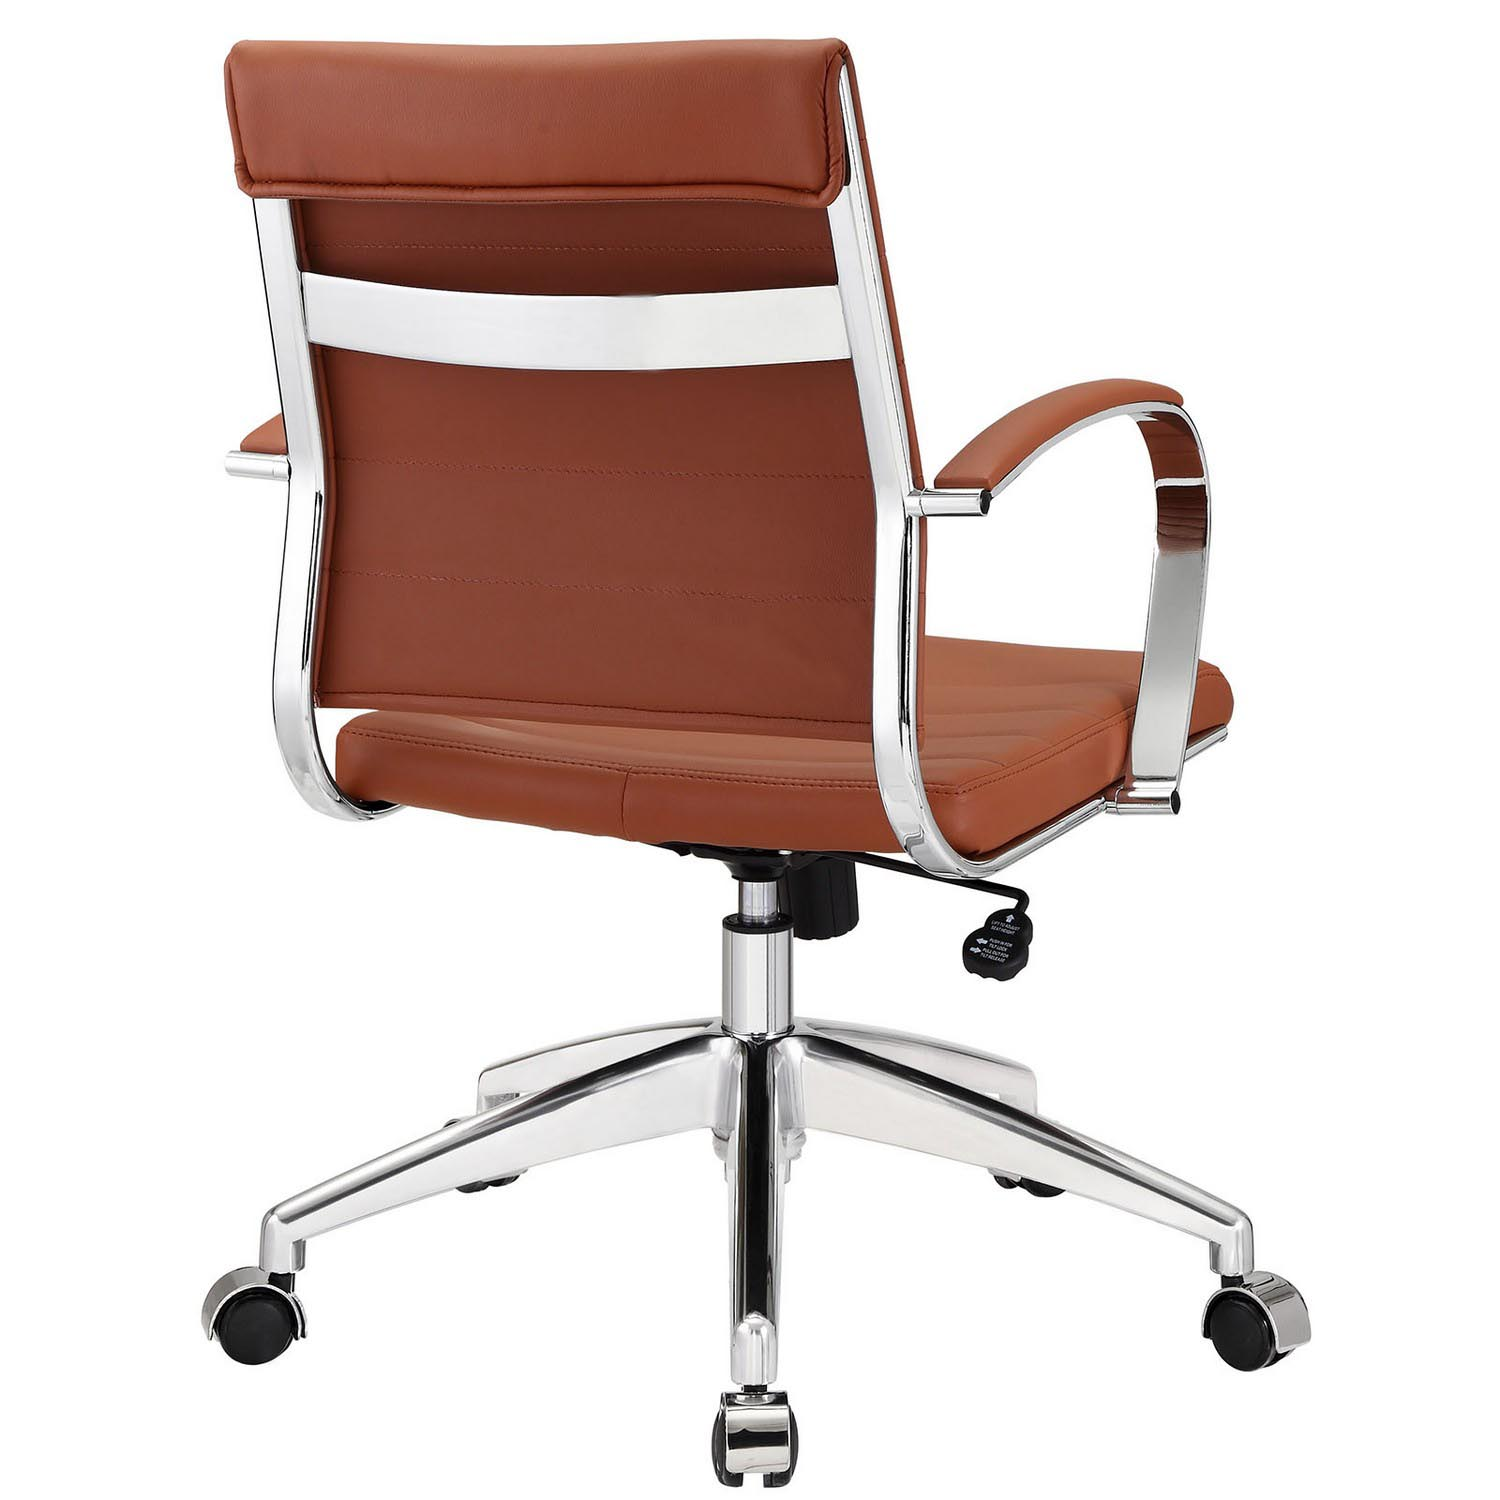 Modway Jive Mid Back Office Chair - Terracotta